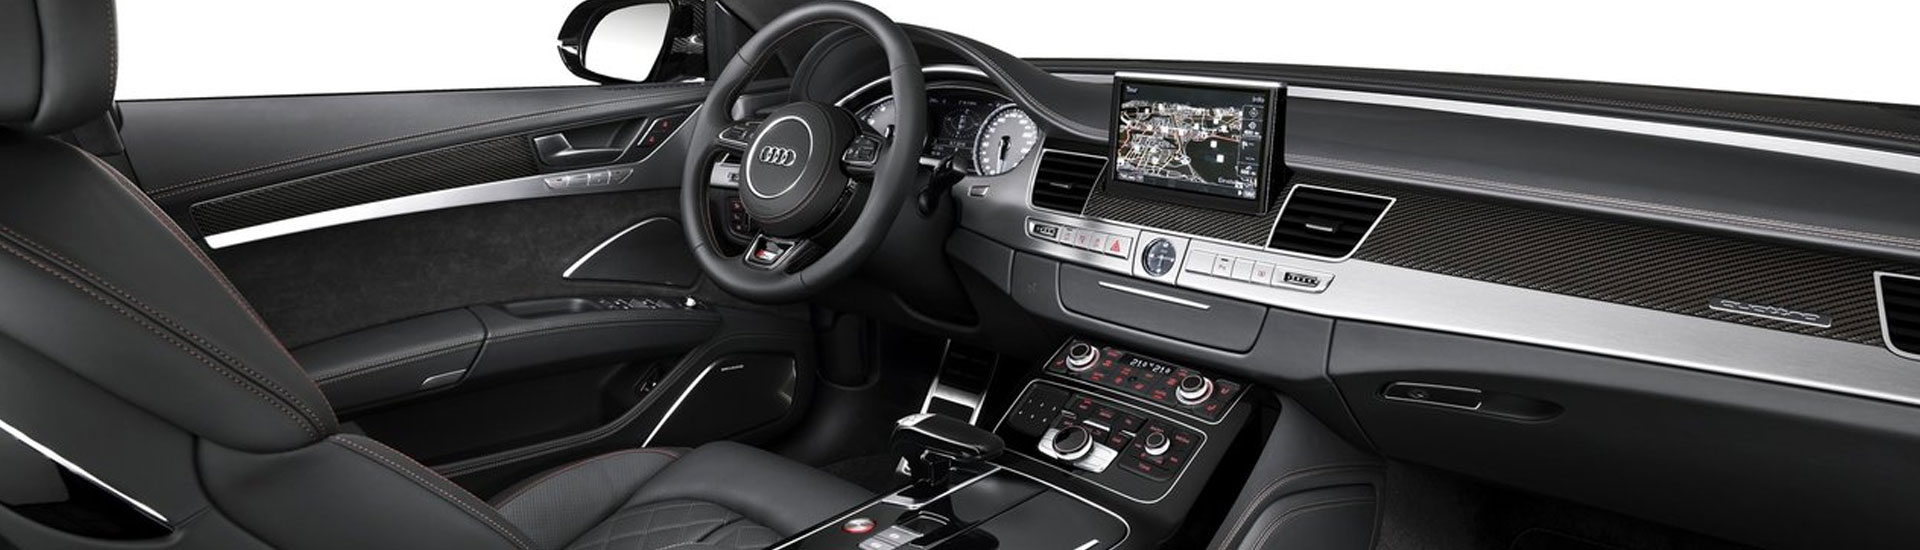 2017 Audi A8 Custom Dash Kits